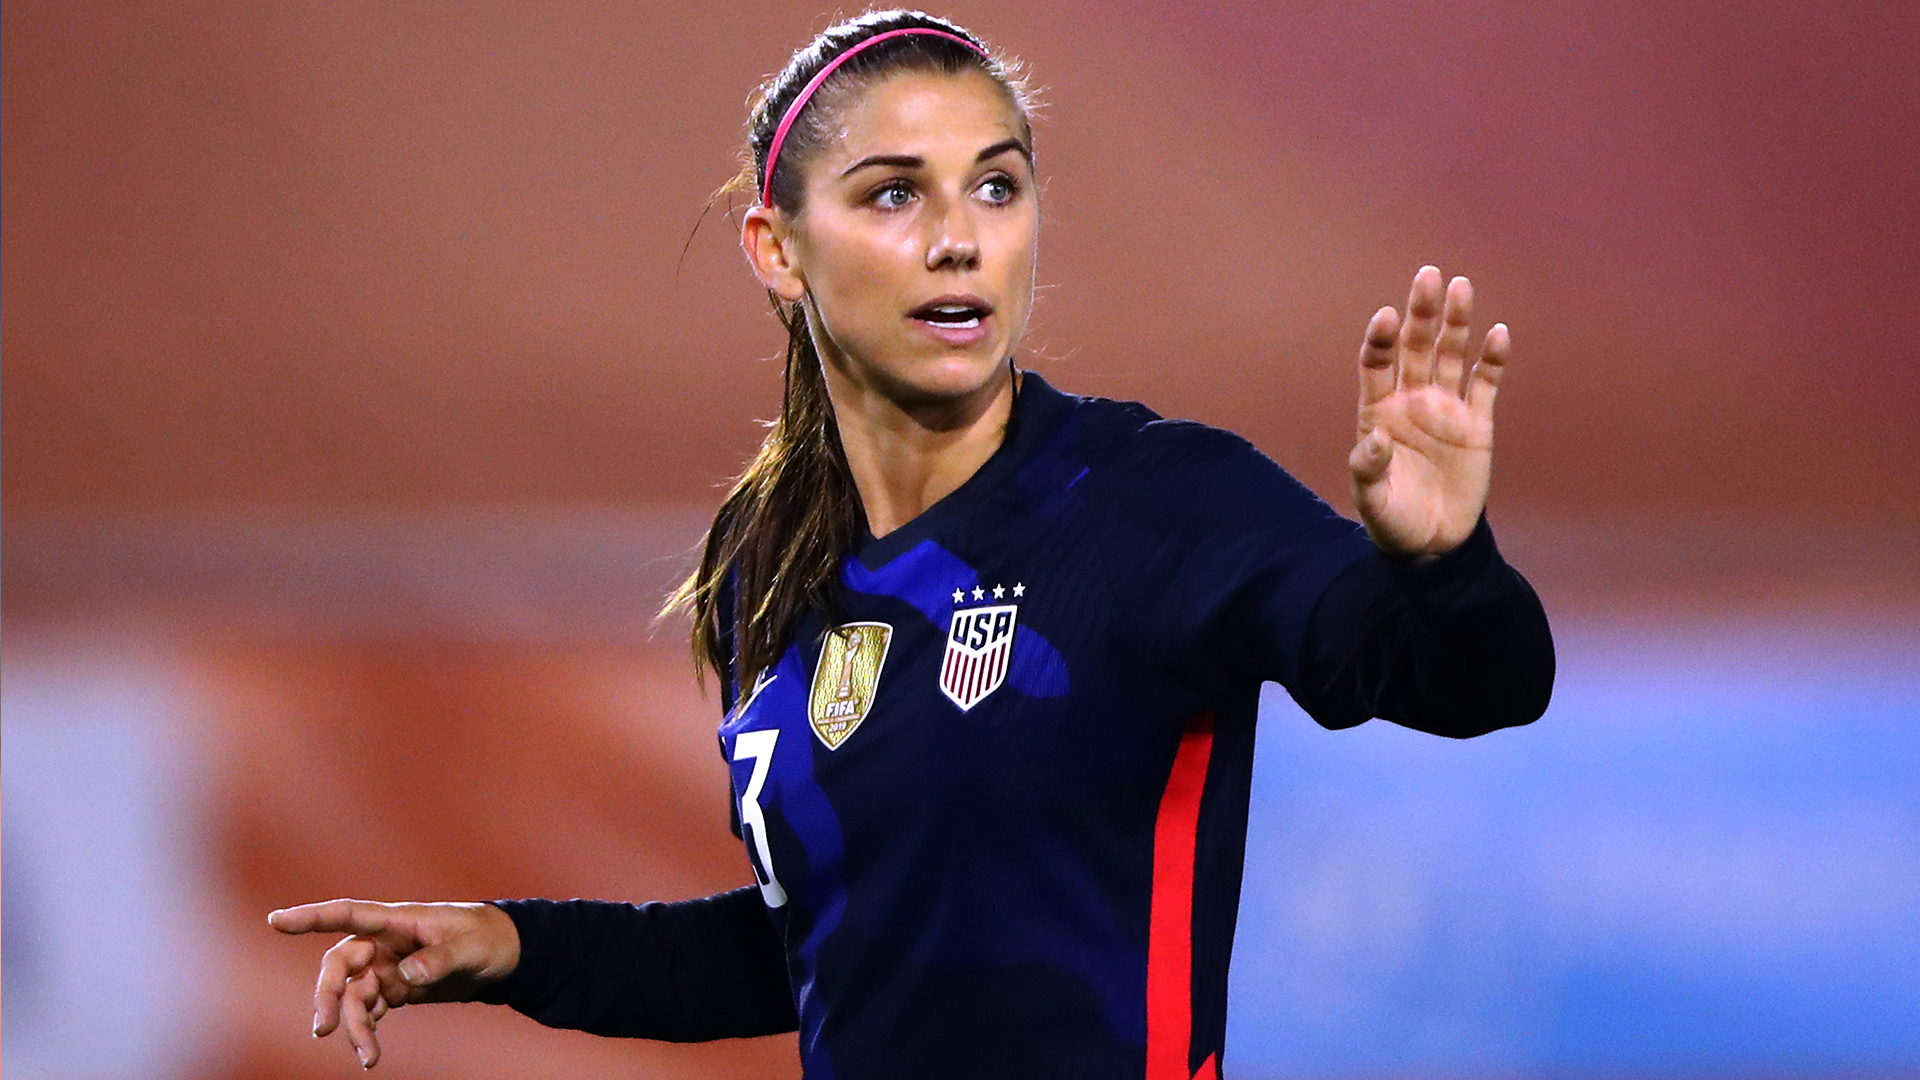 USWNT star Morgan has recovered from Covid-19, head coach Andonovski confirms